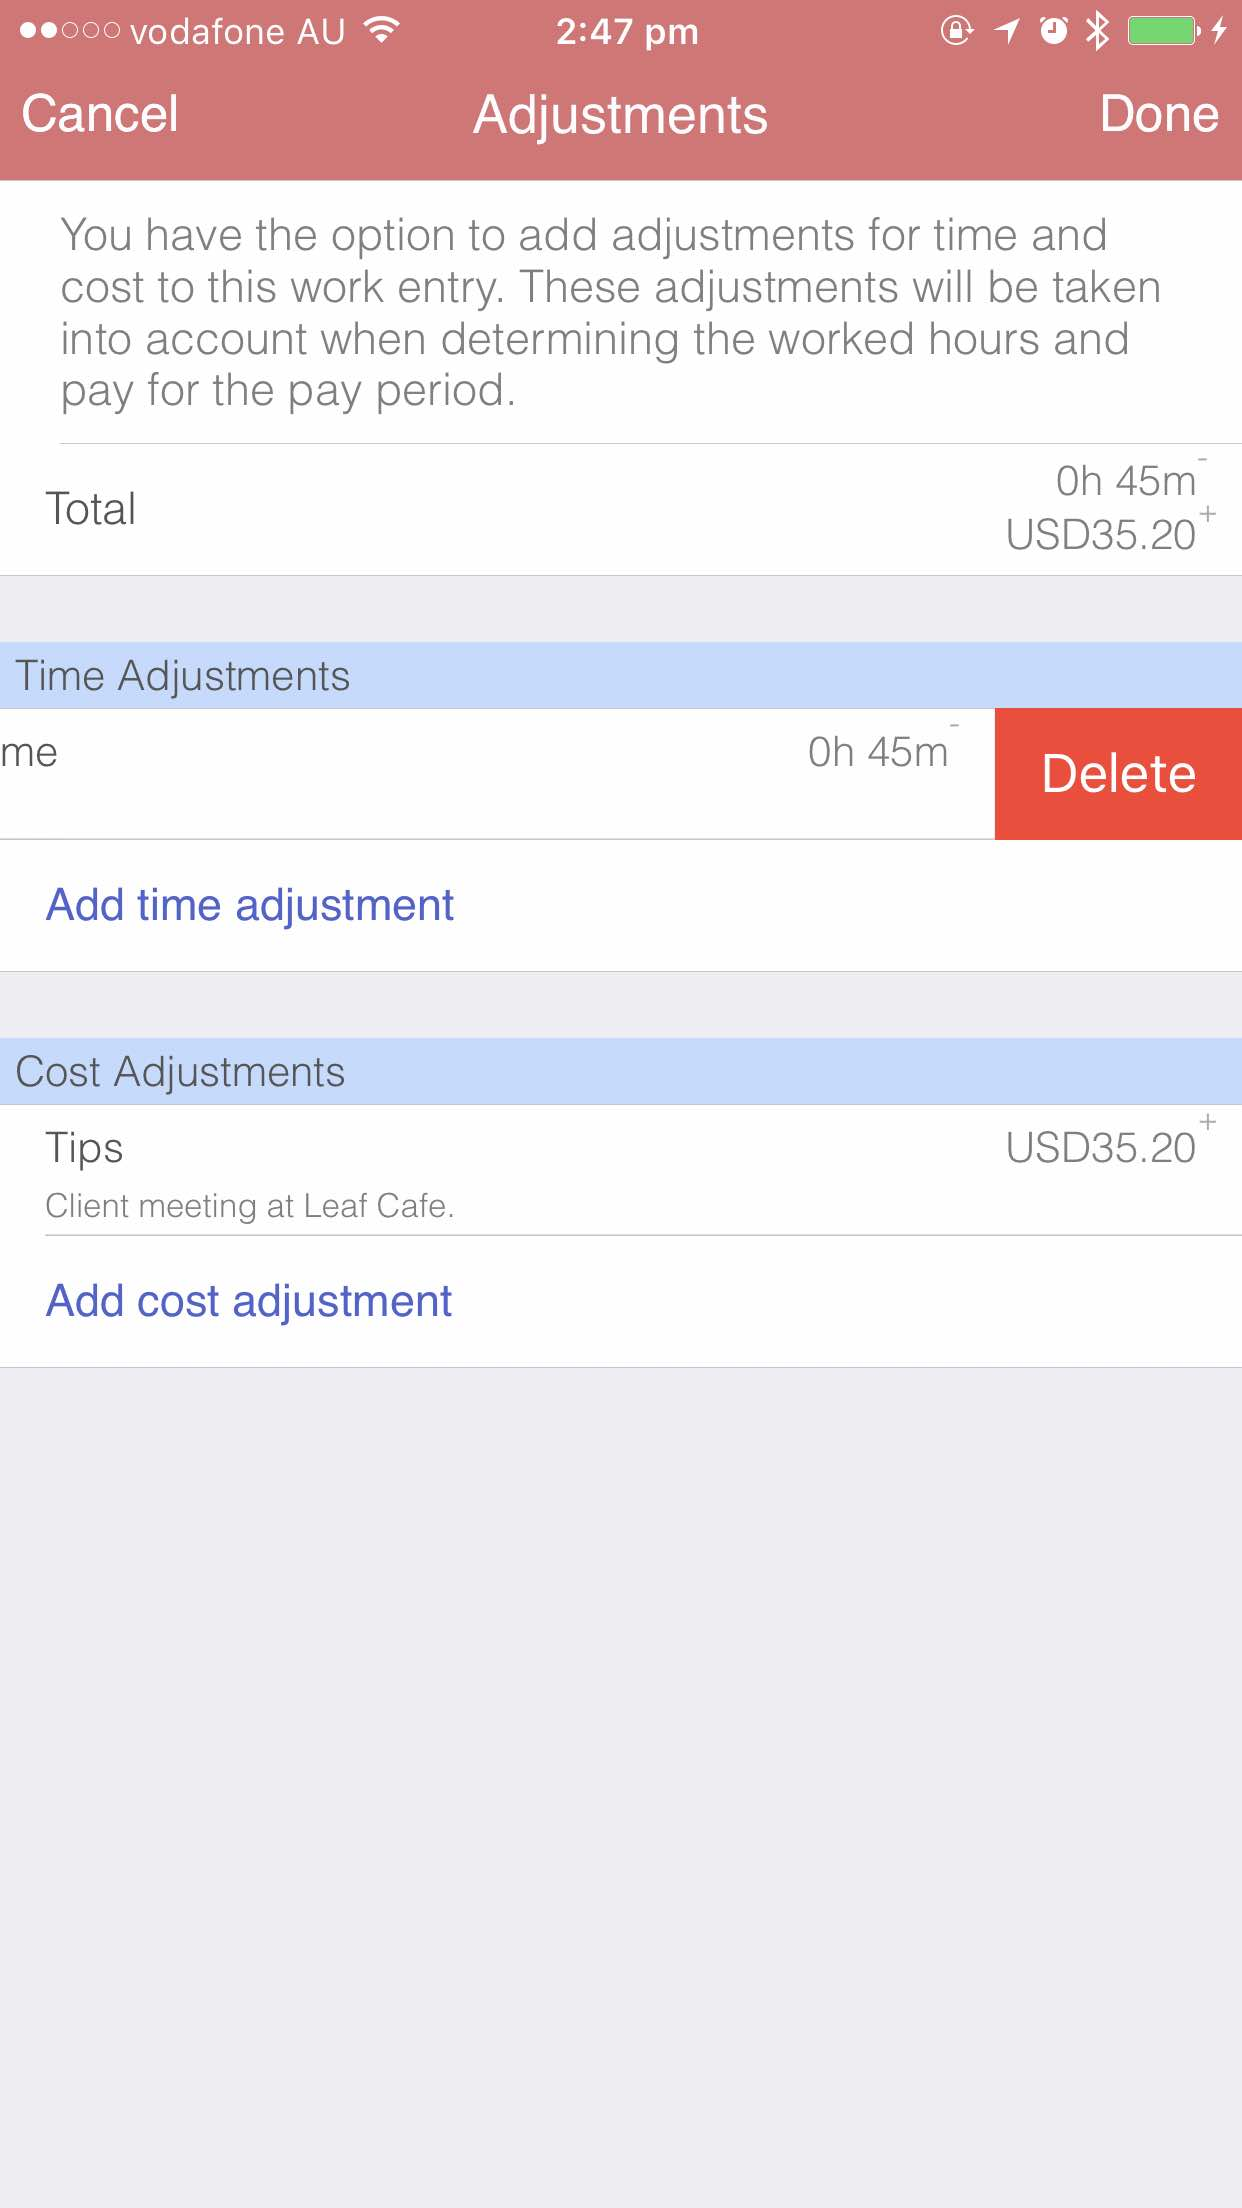 Deleting adjustments iOS